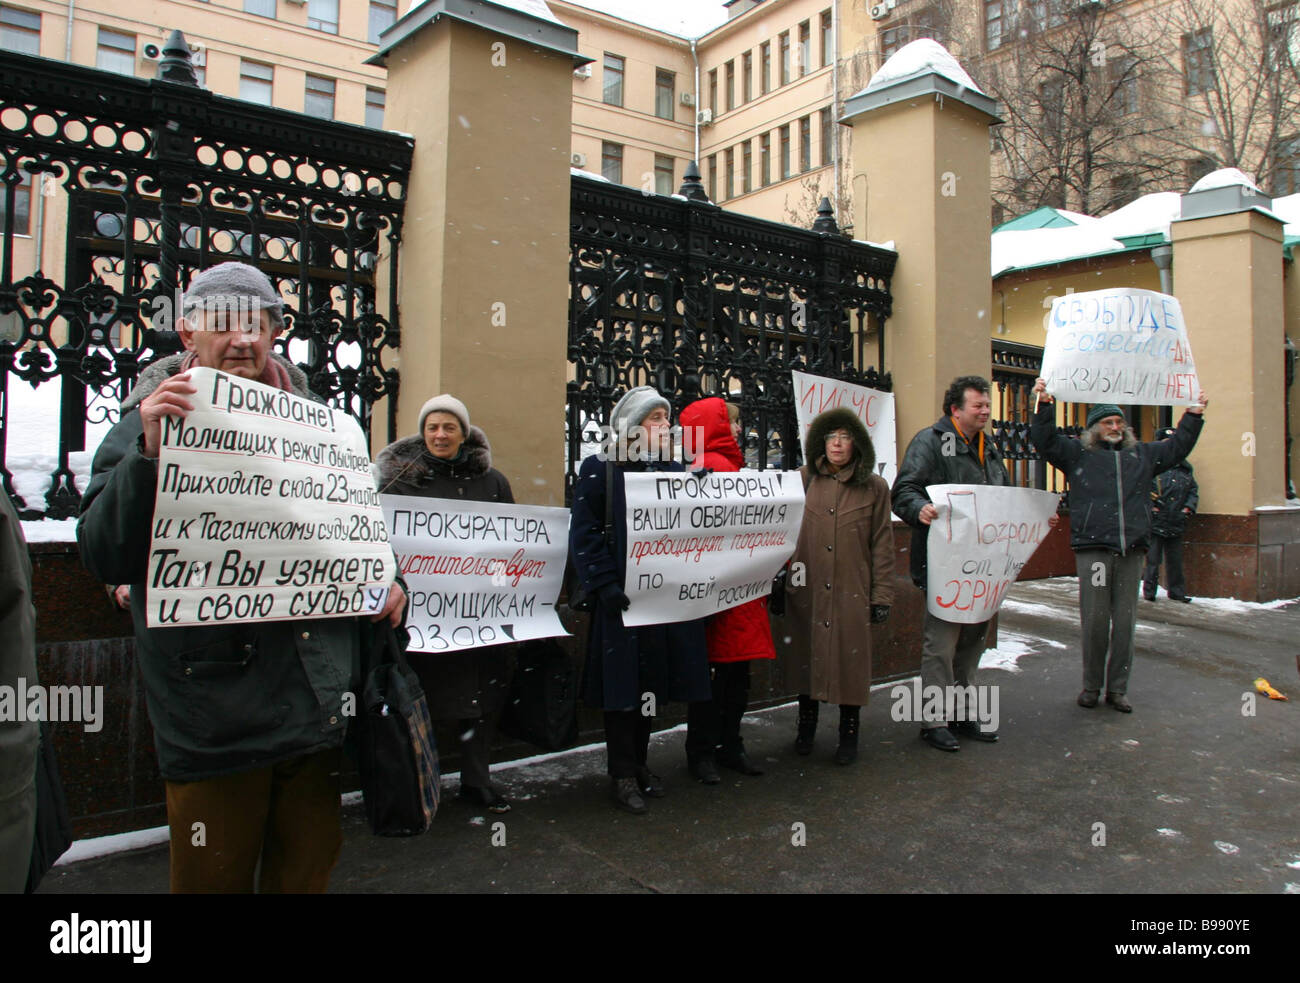 A rally of supporters of organizers of the exhibition Beware Religion and protestors against actions of the Prosecutor - Stock Image